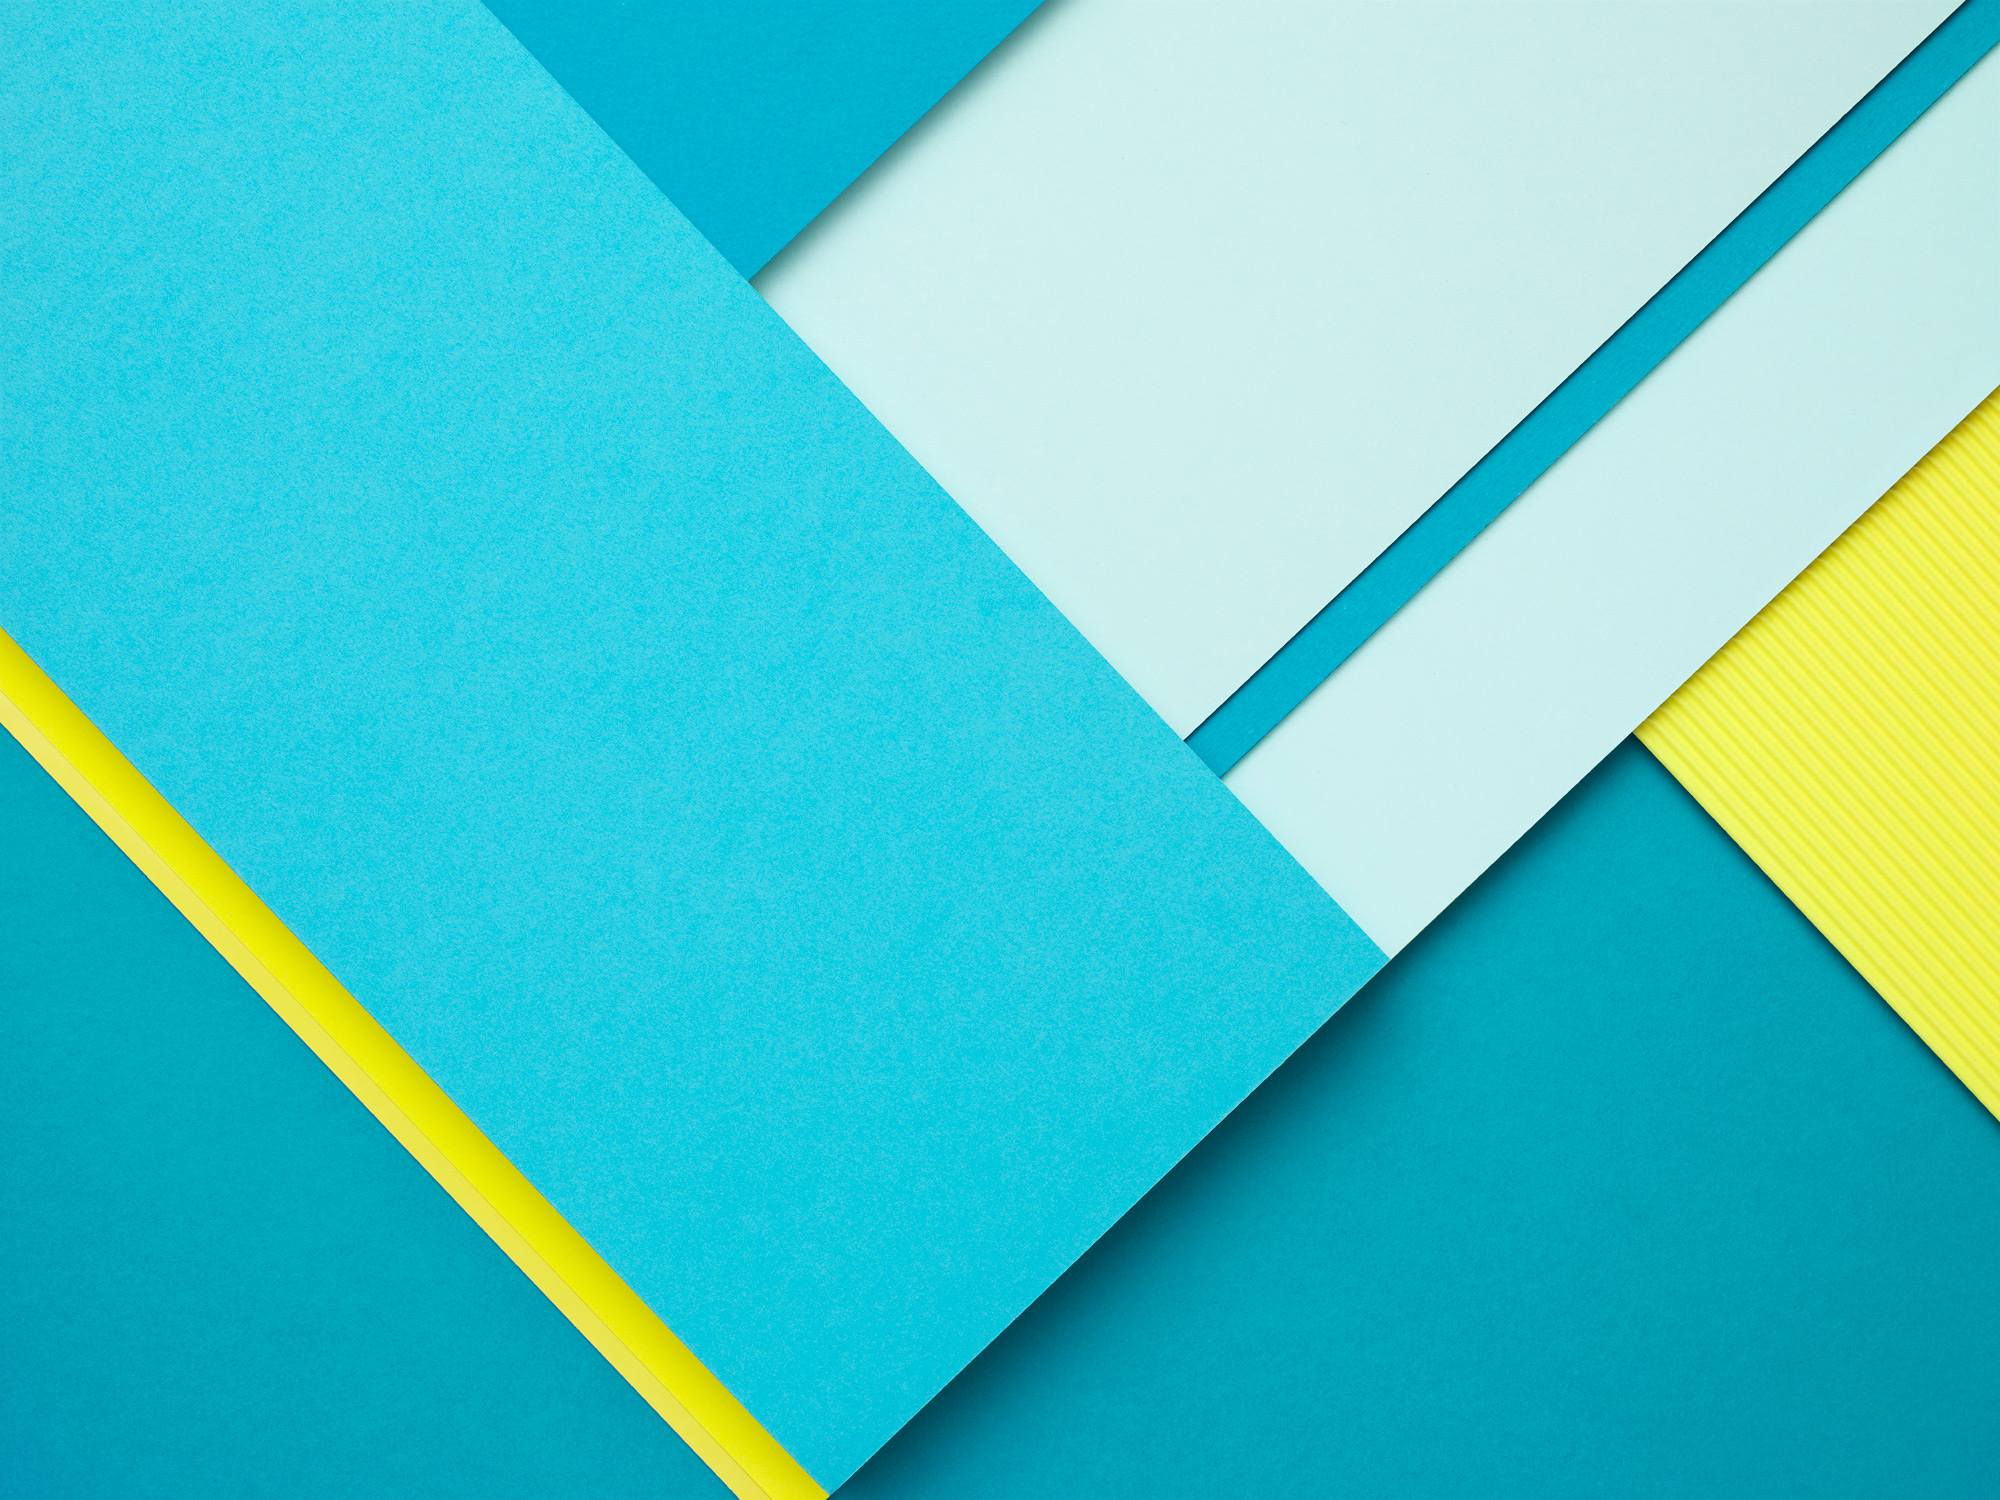 collection of material design wallpapers intrapixel